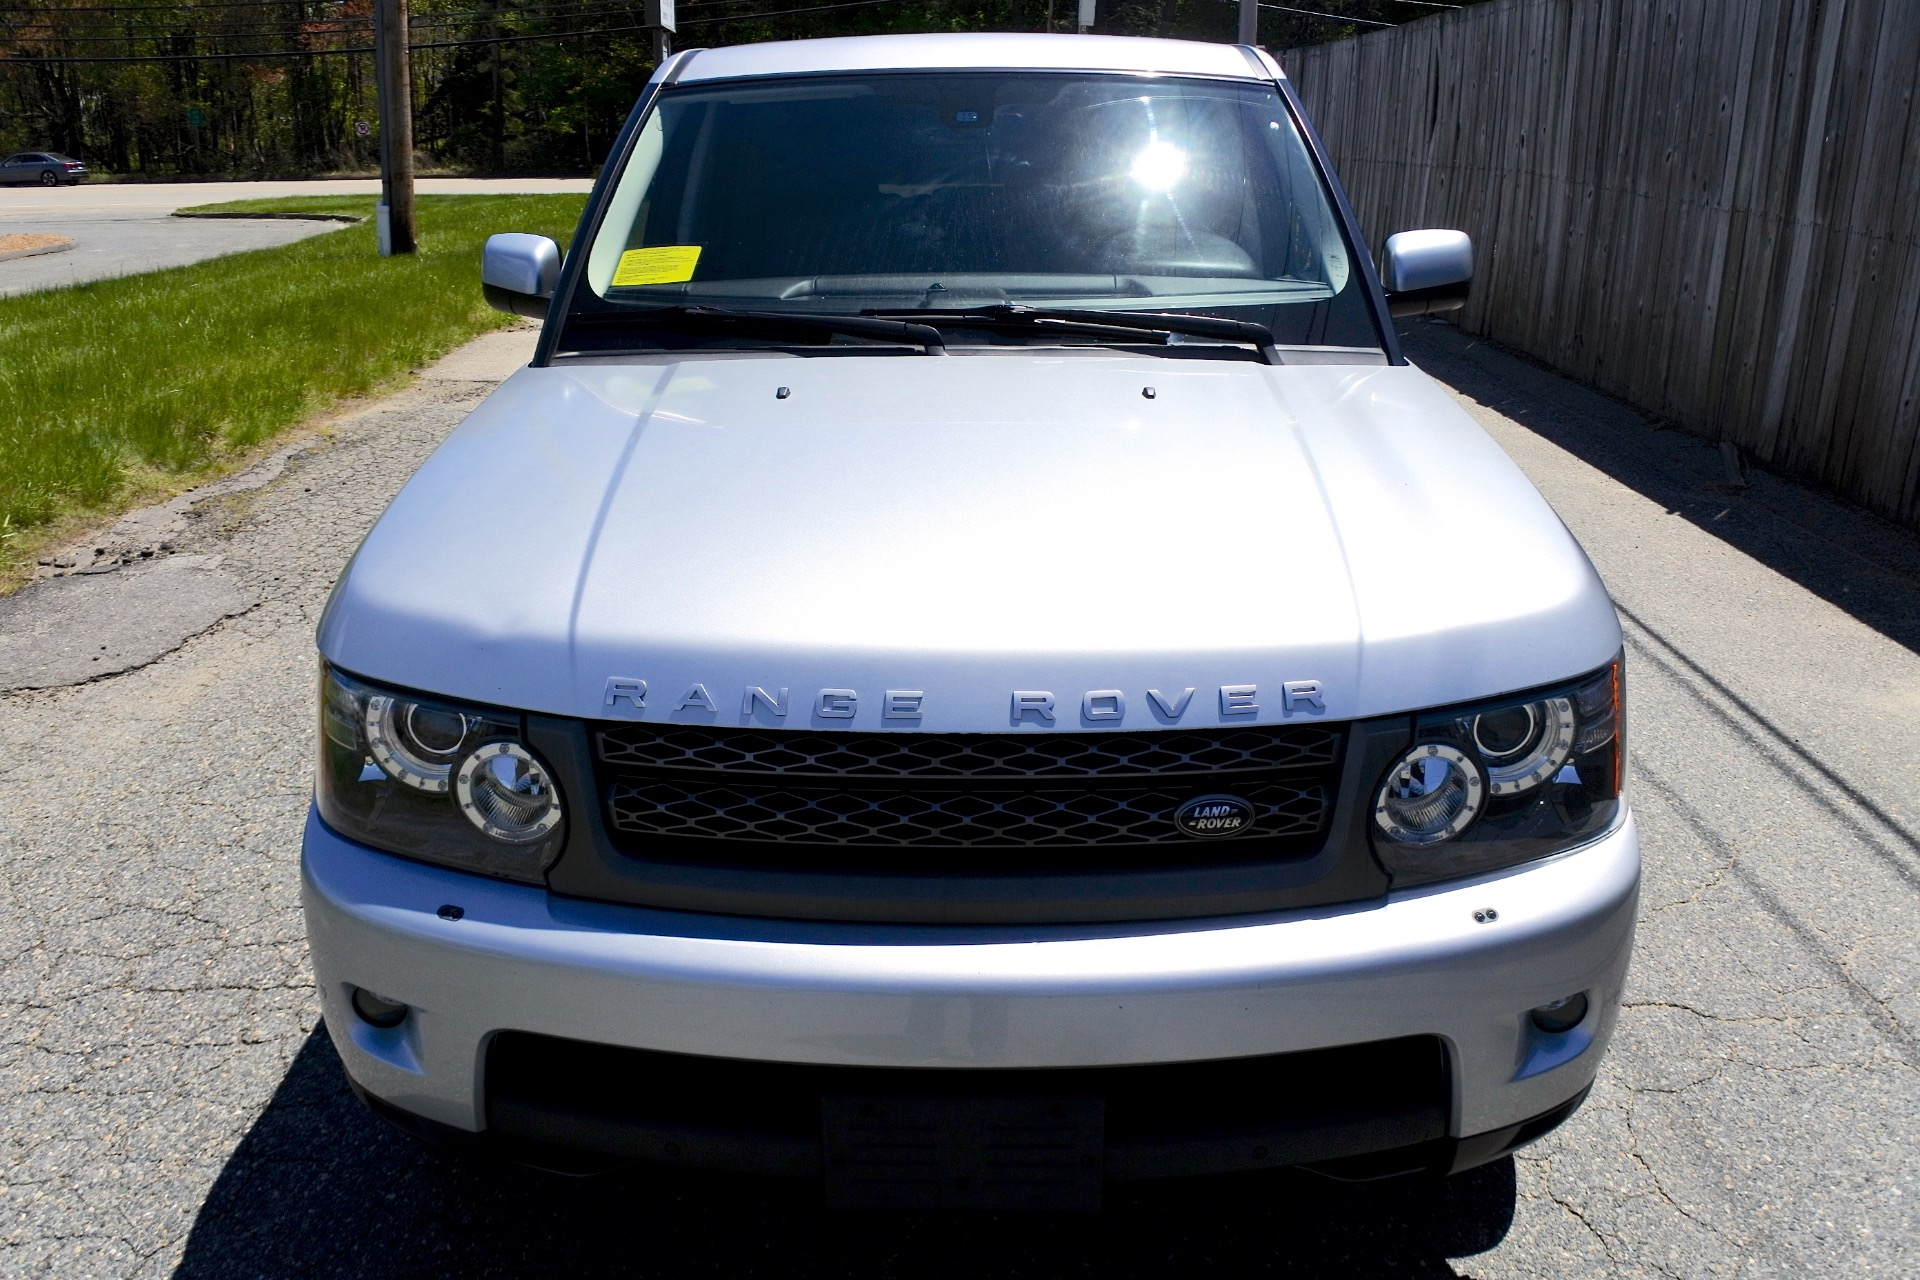 Used 2011 Land Rover Range Rover Sport HSE Used 2011 Land Rover Range Rover Sport HSE for sale  at Metro West Motorcars LLC in Shrewsbury MA 8